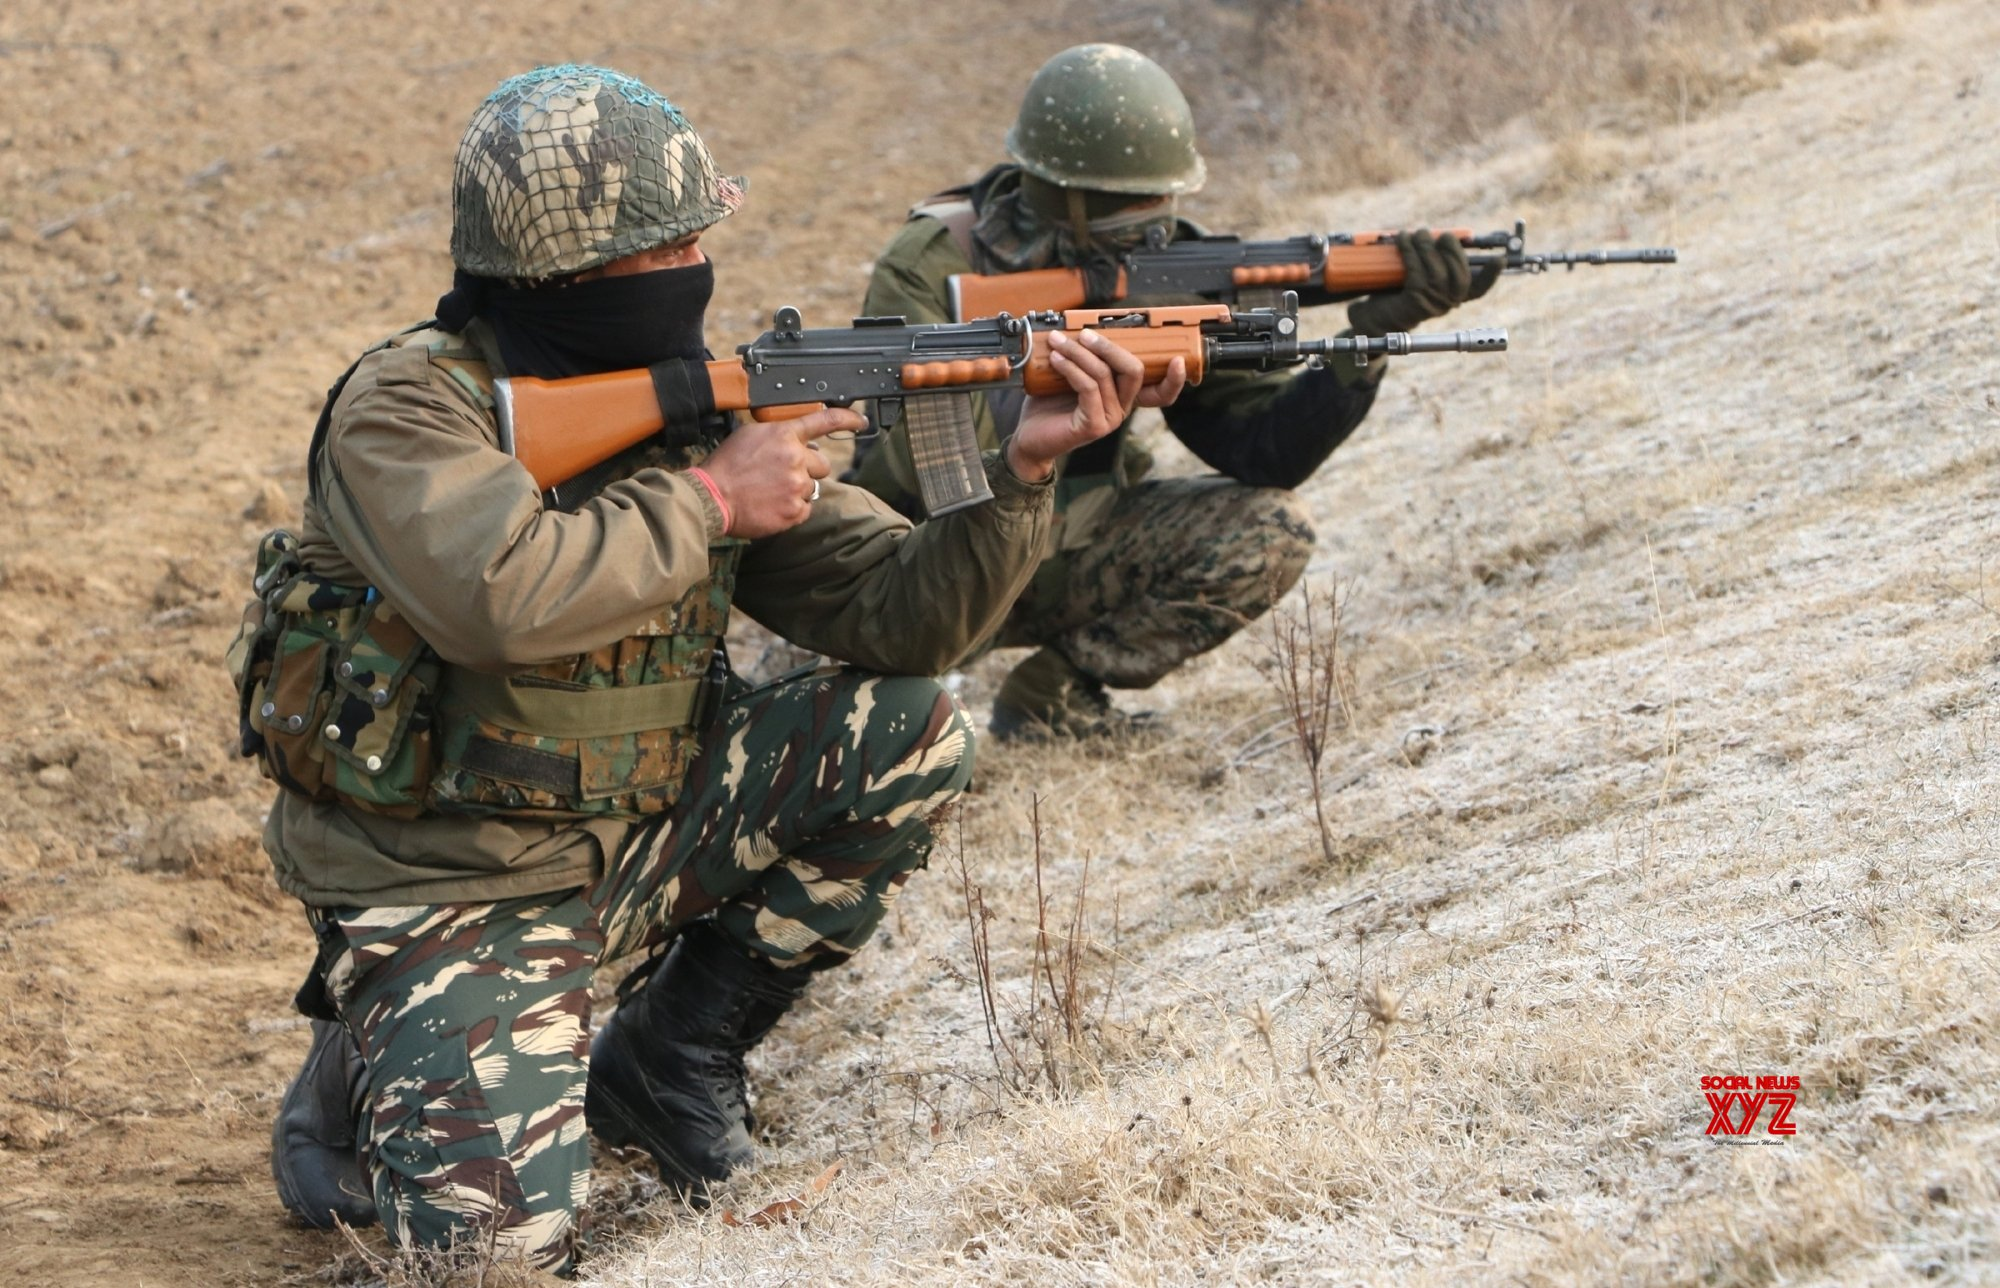 Pak violates ceasefire agreement, fires in J&K's Ramgarh sector